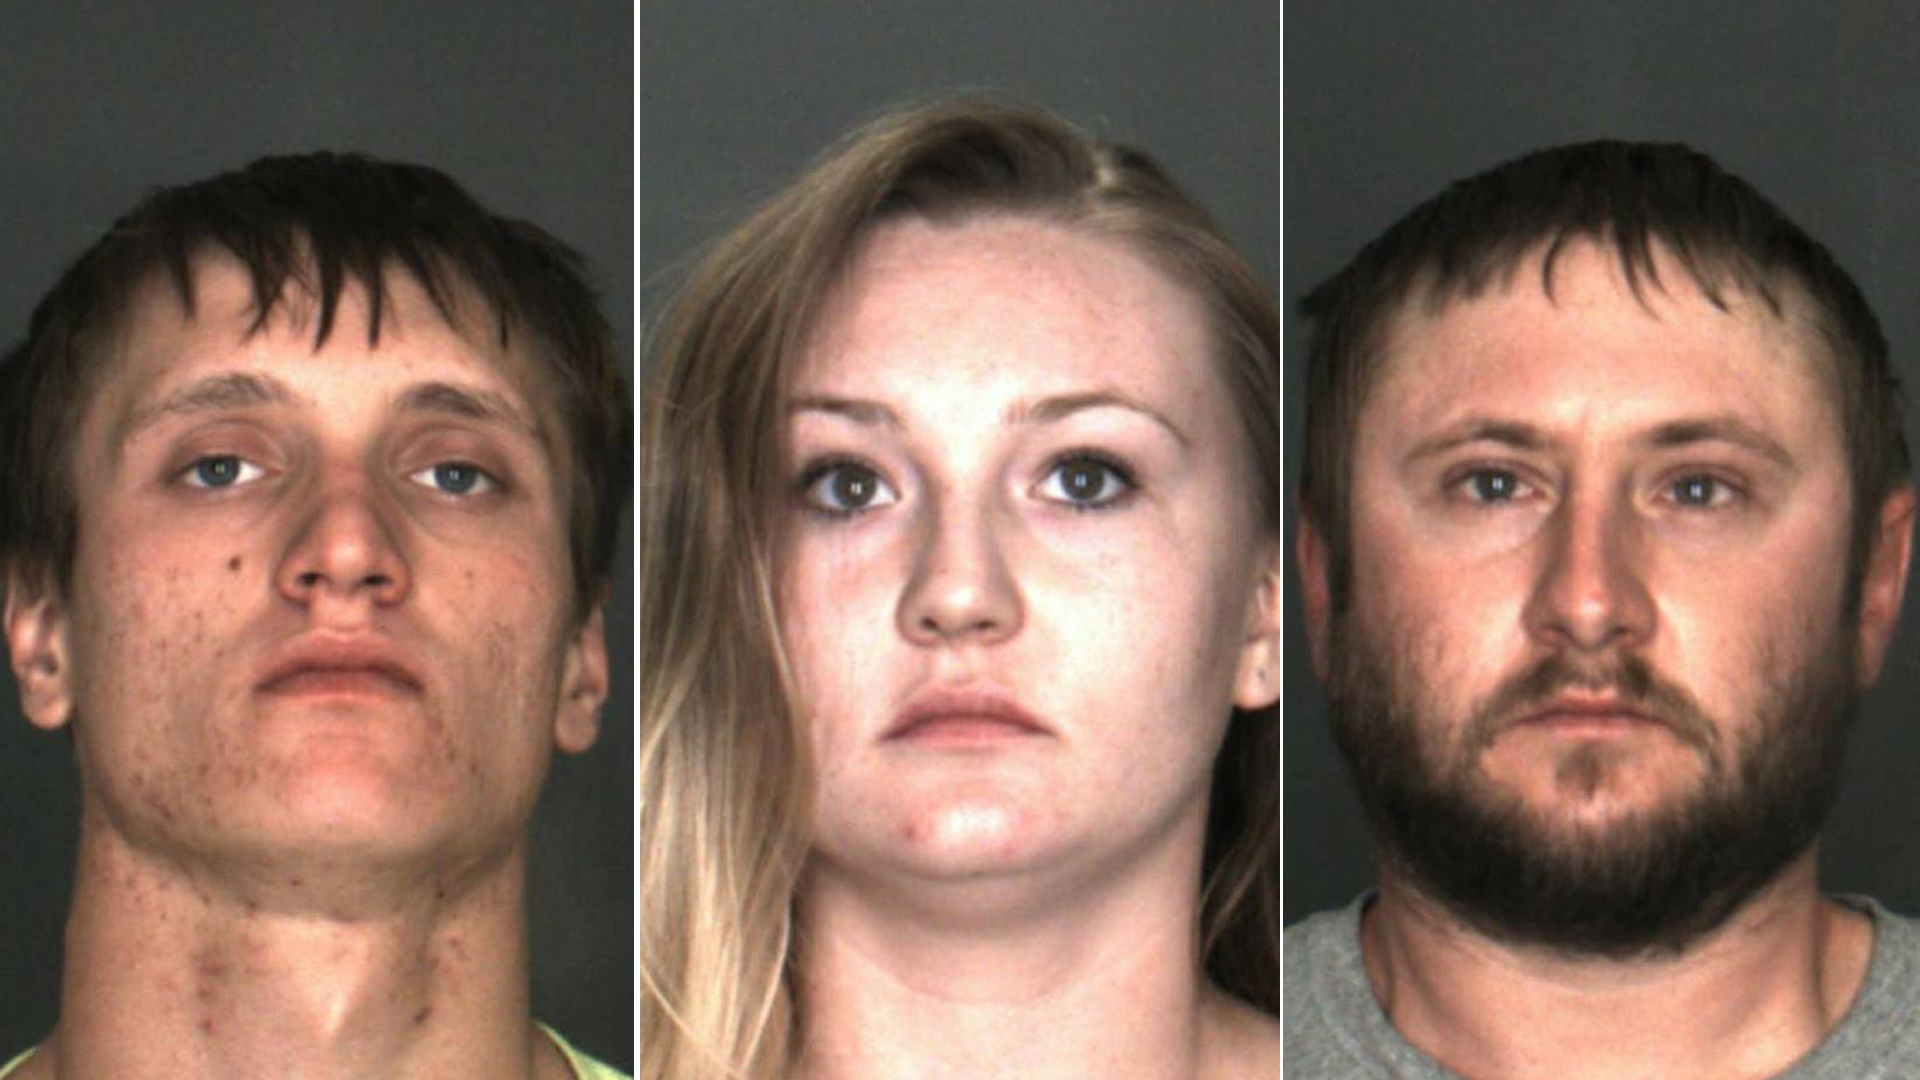 Ronald Wolfe and Nichole and Kyle Stewart appear in booking photos released by Chino police on March 19, 2019.